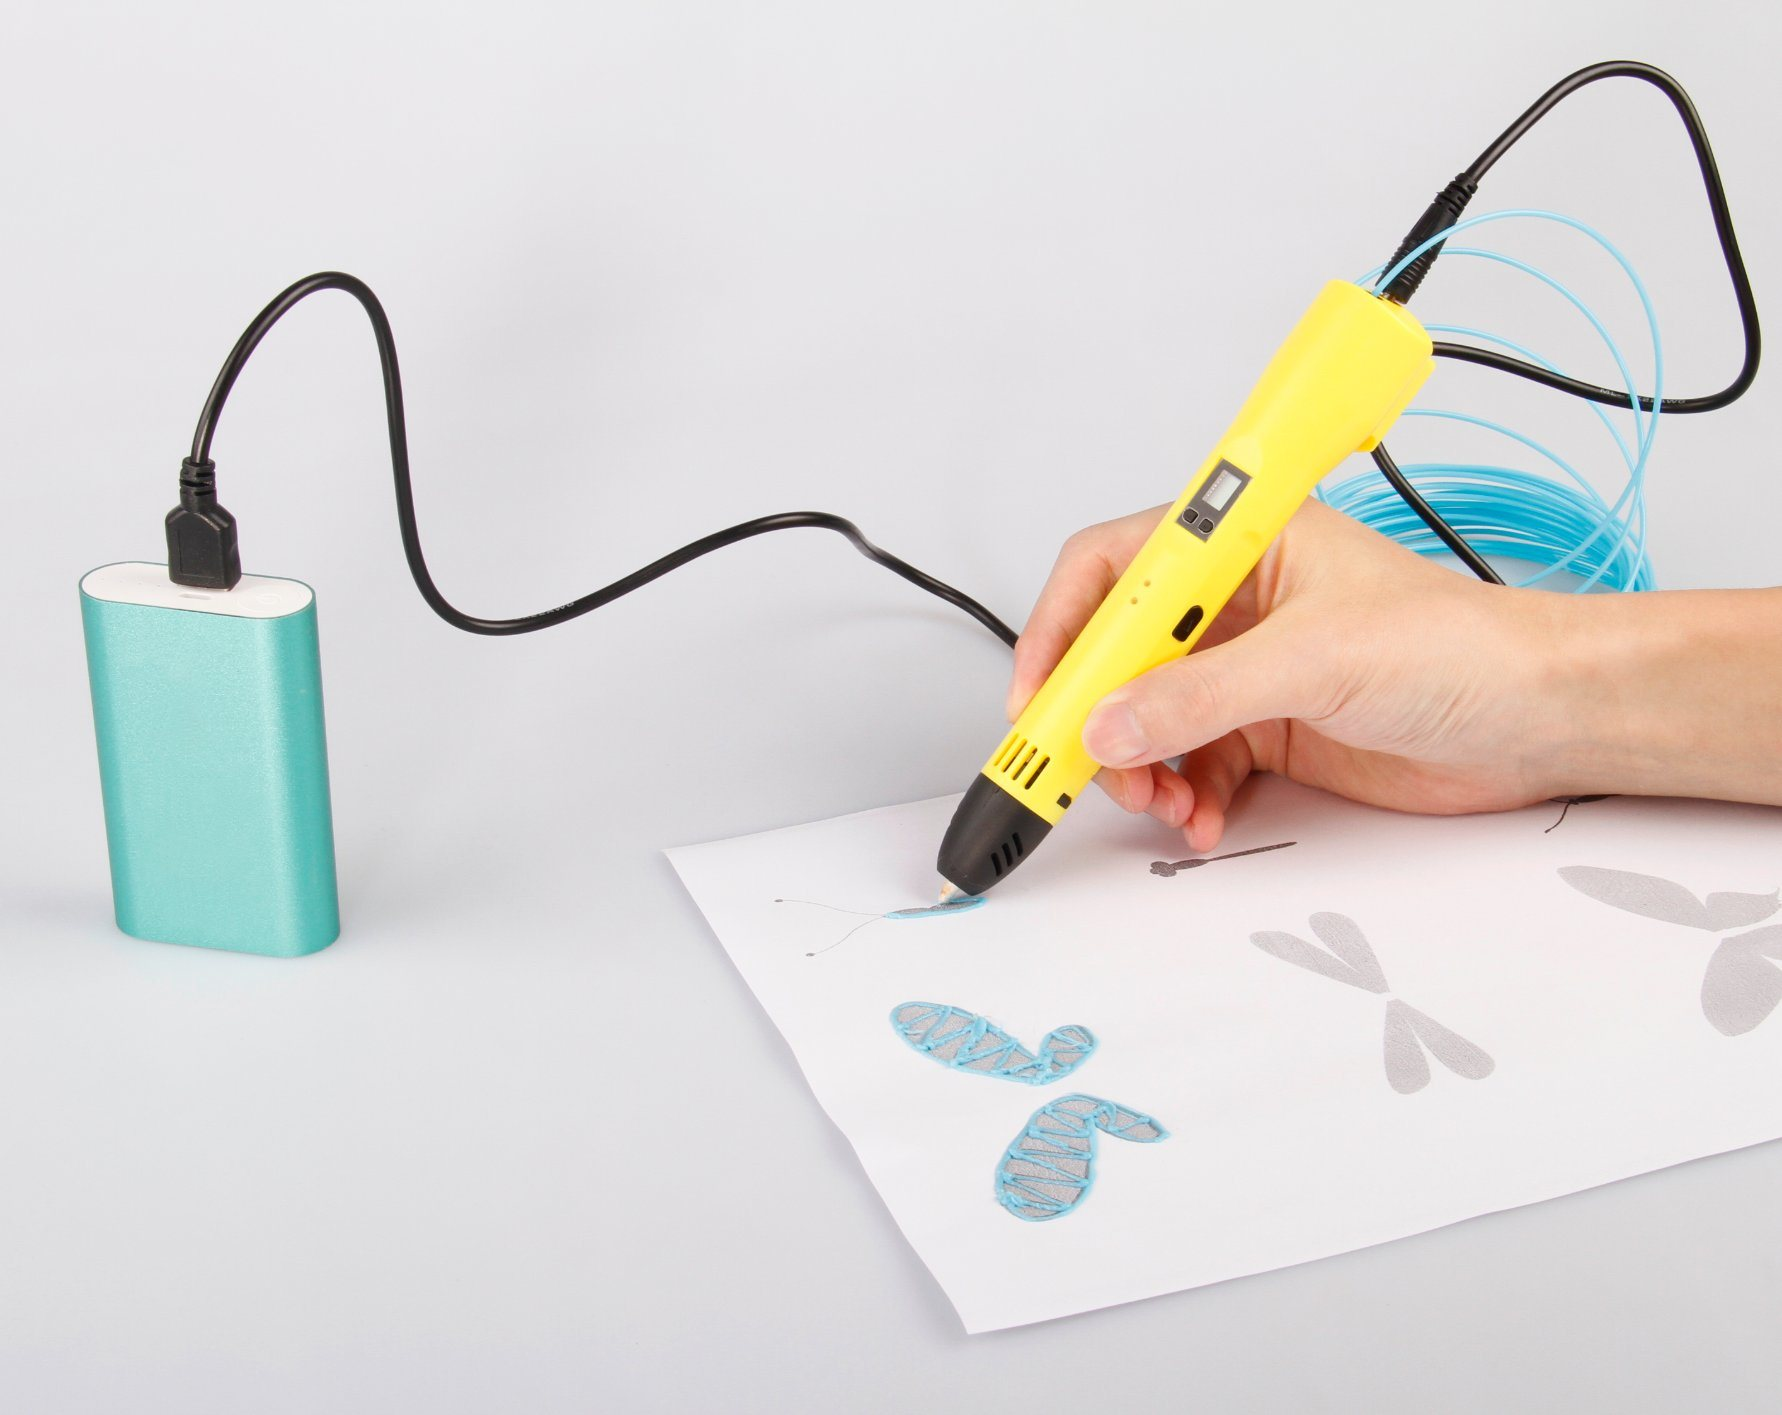 Innovative Handheld Magic Gift 3D Air Pen